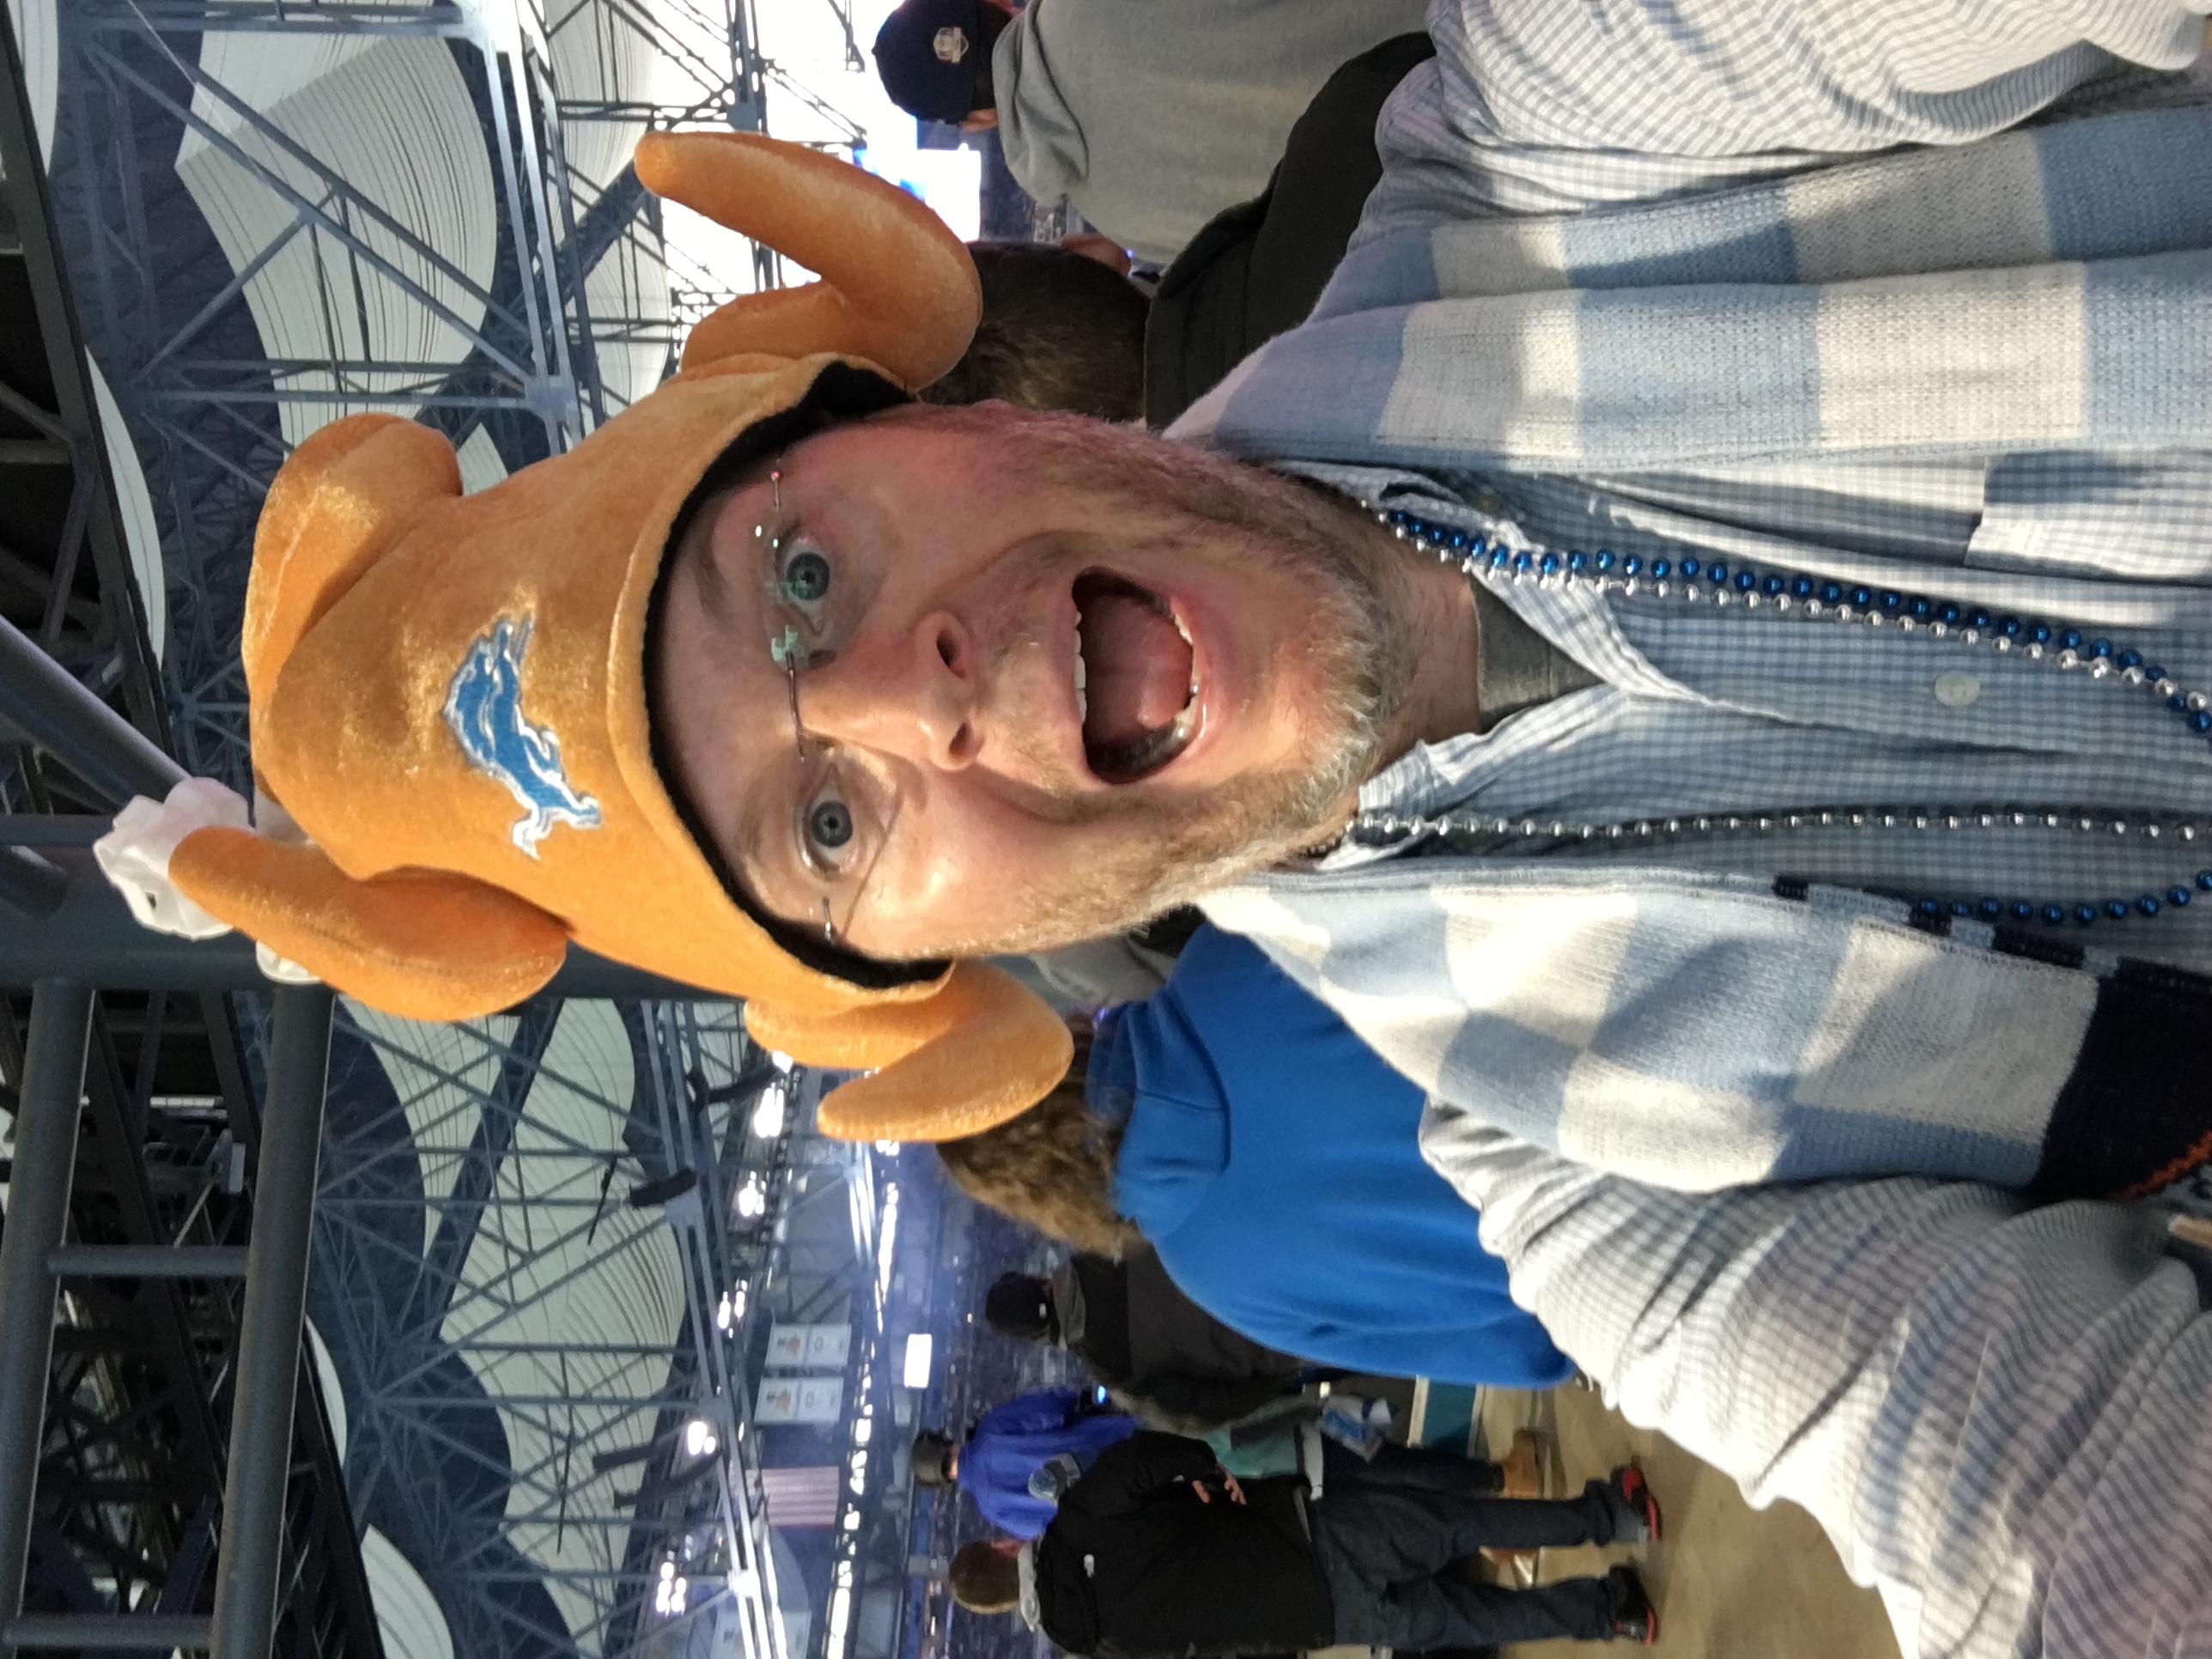 Rich O'Malley seeing the Lions in Detroit. (Post Hill Press)